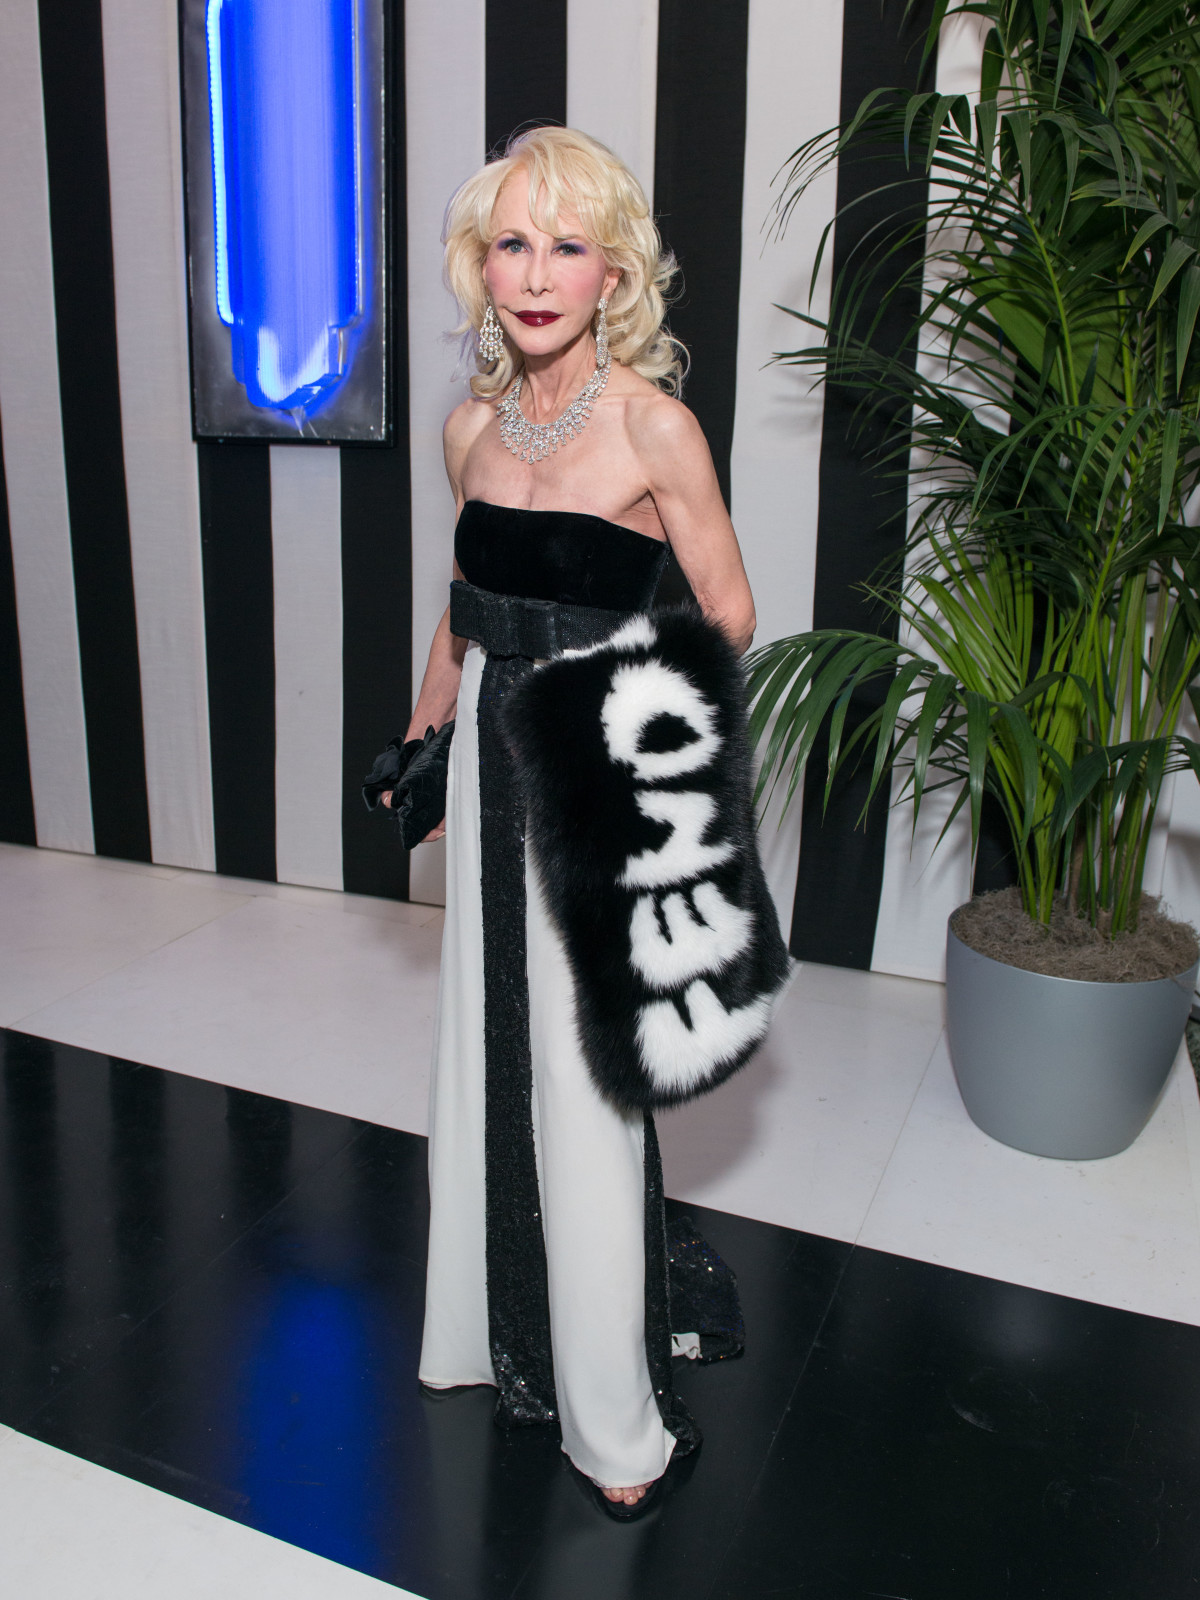 News, Shelby, MFAH gala gowns, Oct. 2015 Diane Lokey Farb, Valentino gown, Fendi fur